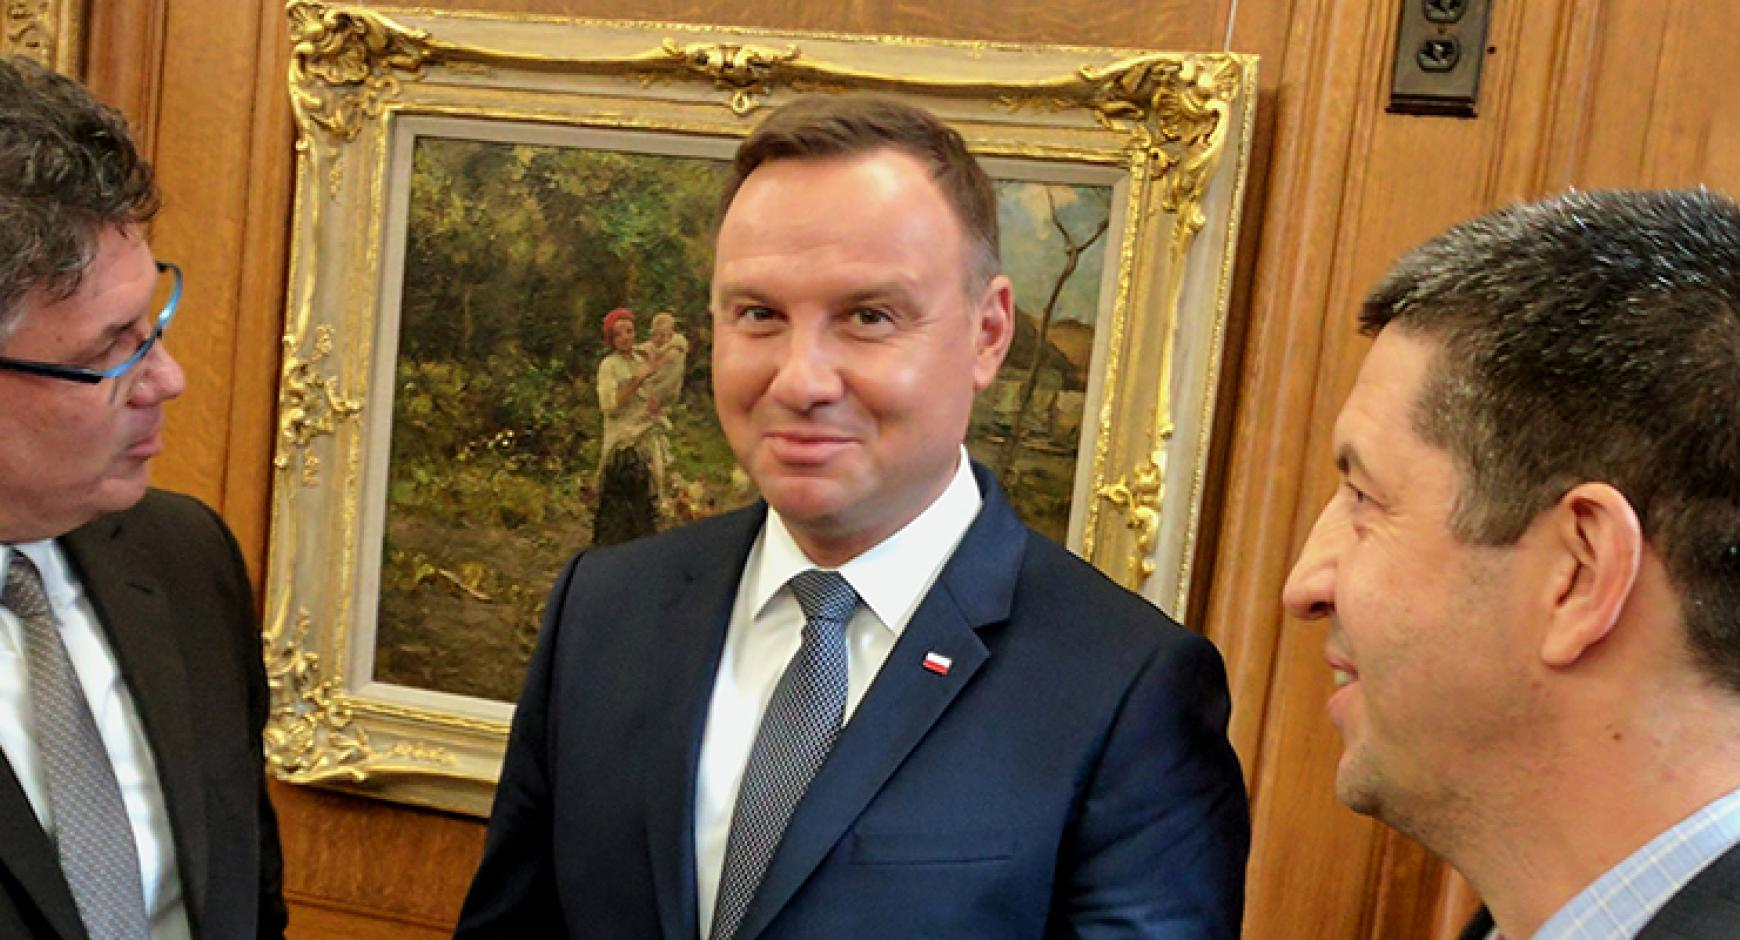 Dr. Jaeck Gwizdka, Texas iSchool assistant professor and Mr. Andrzej Duda, president of the Republic of Poland